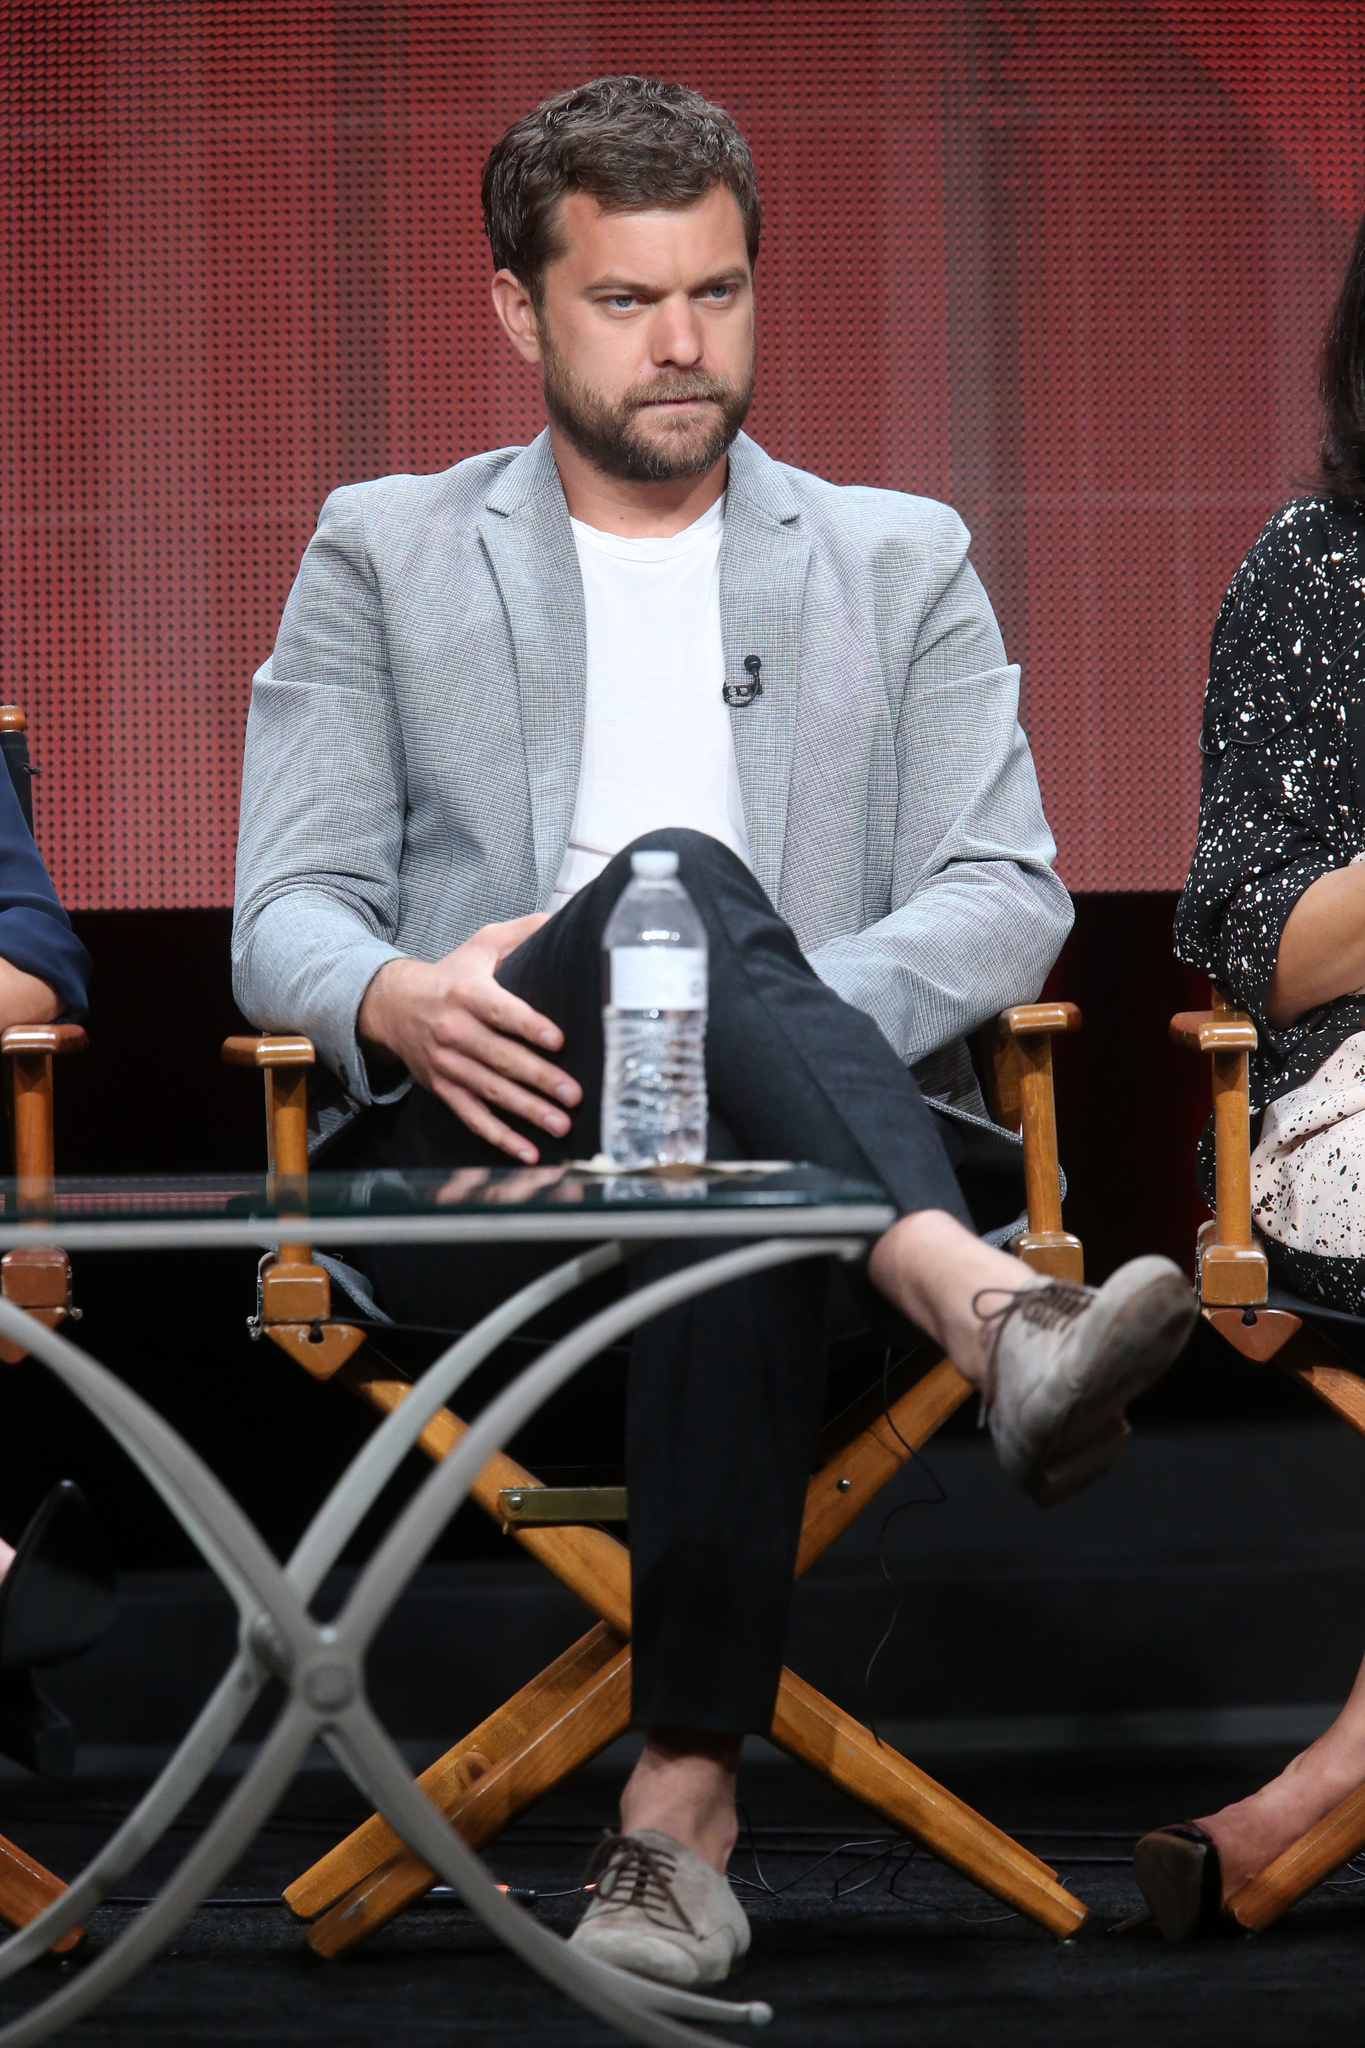 Joshua Jackson at an event for The Affair (2014)